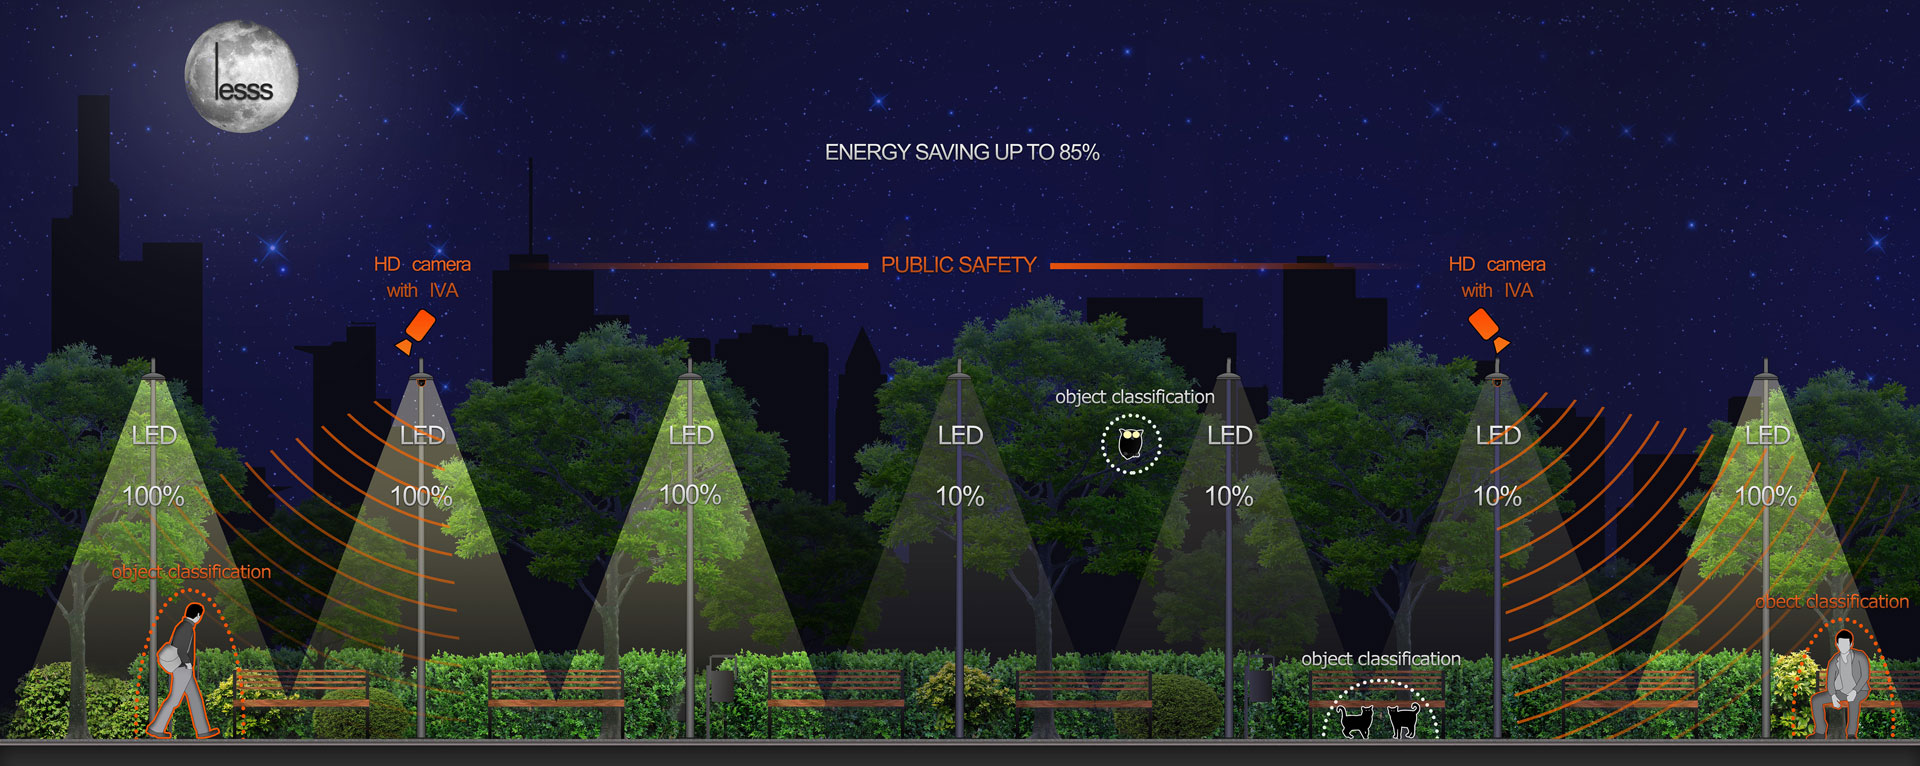 LESSs - Lighting Energy Saving Security Solution